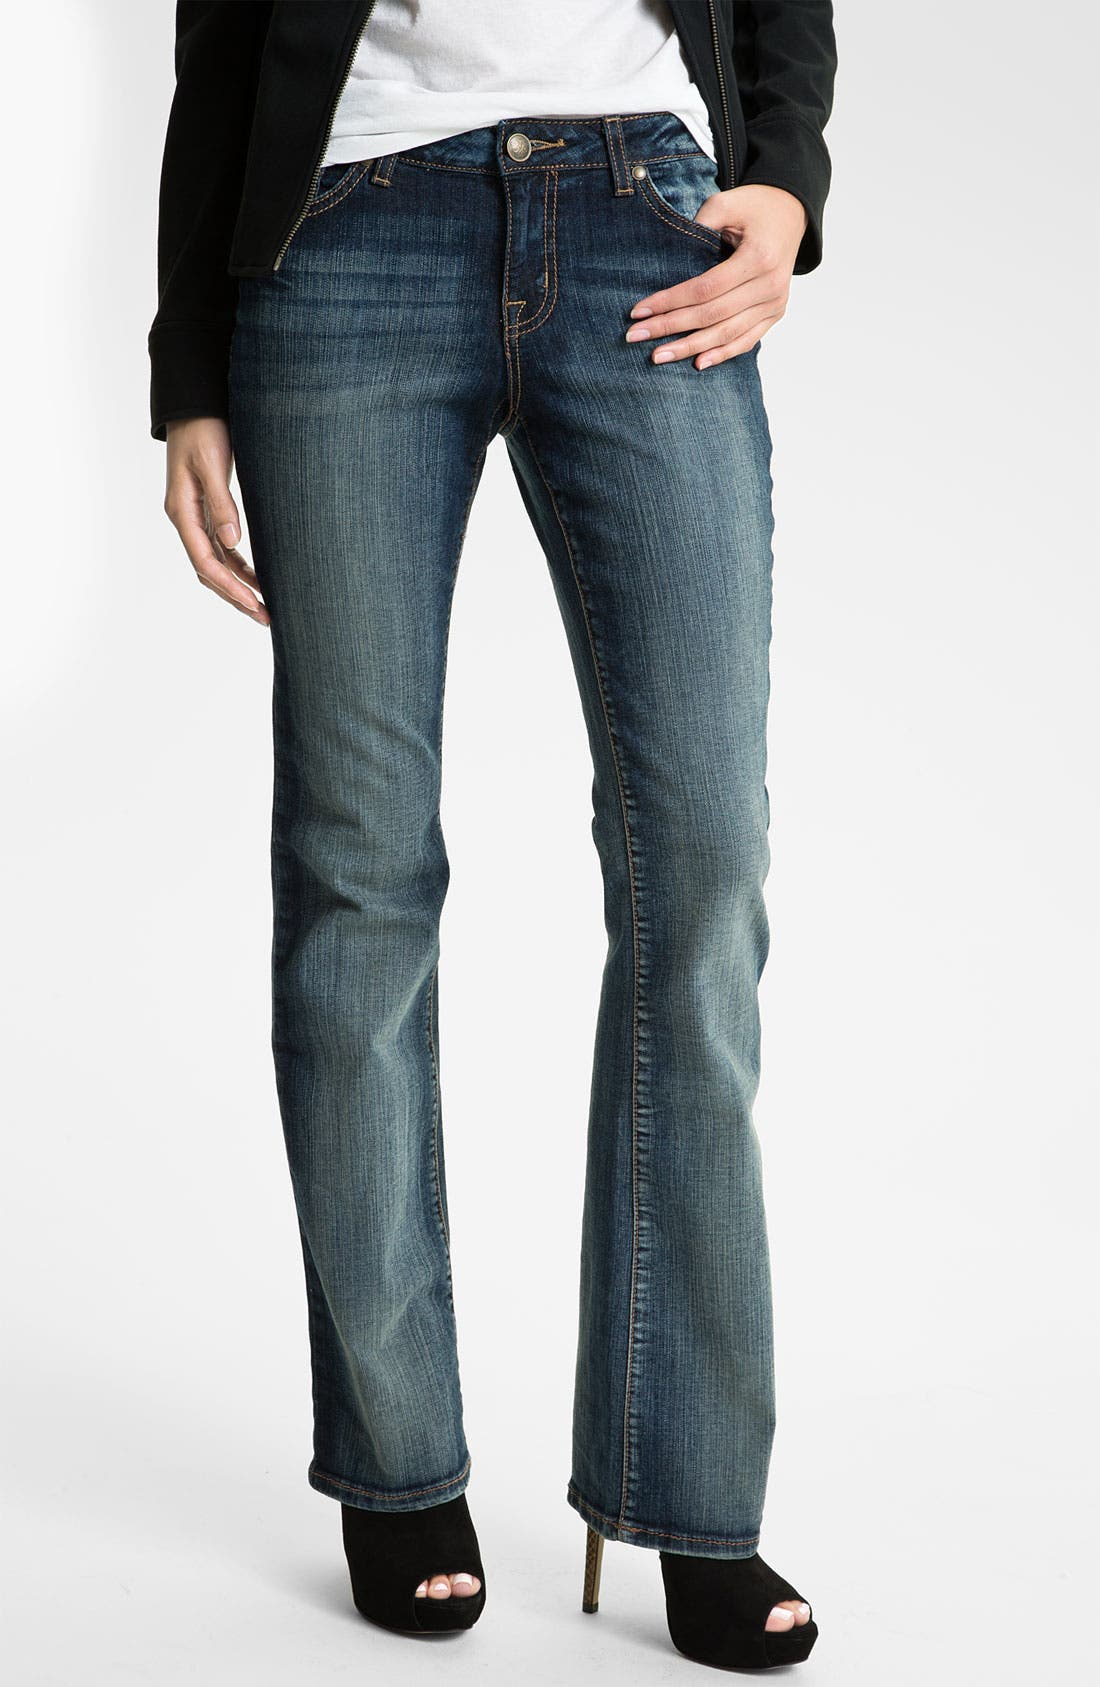 Alternate Image 1 Selected - Jessica Simpson 'Rockin' Curvy Bootcut Jeans (Blitzen) (Online Only)